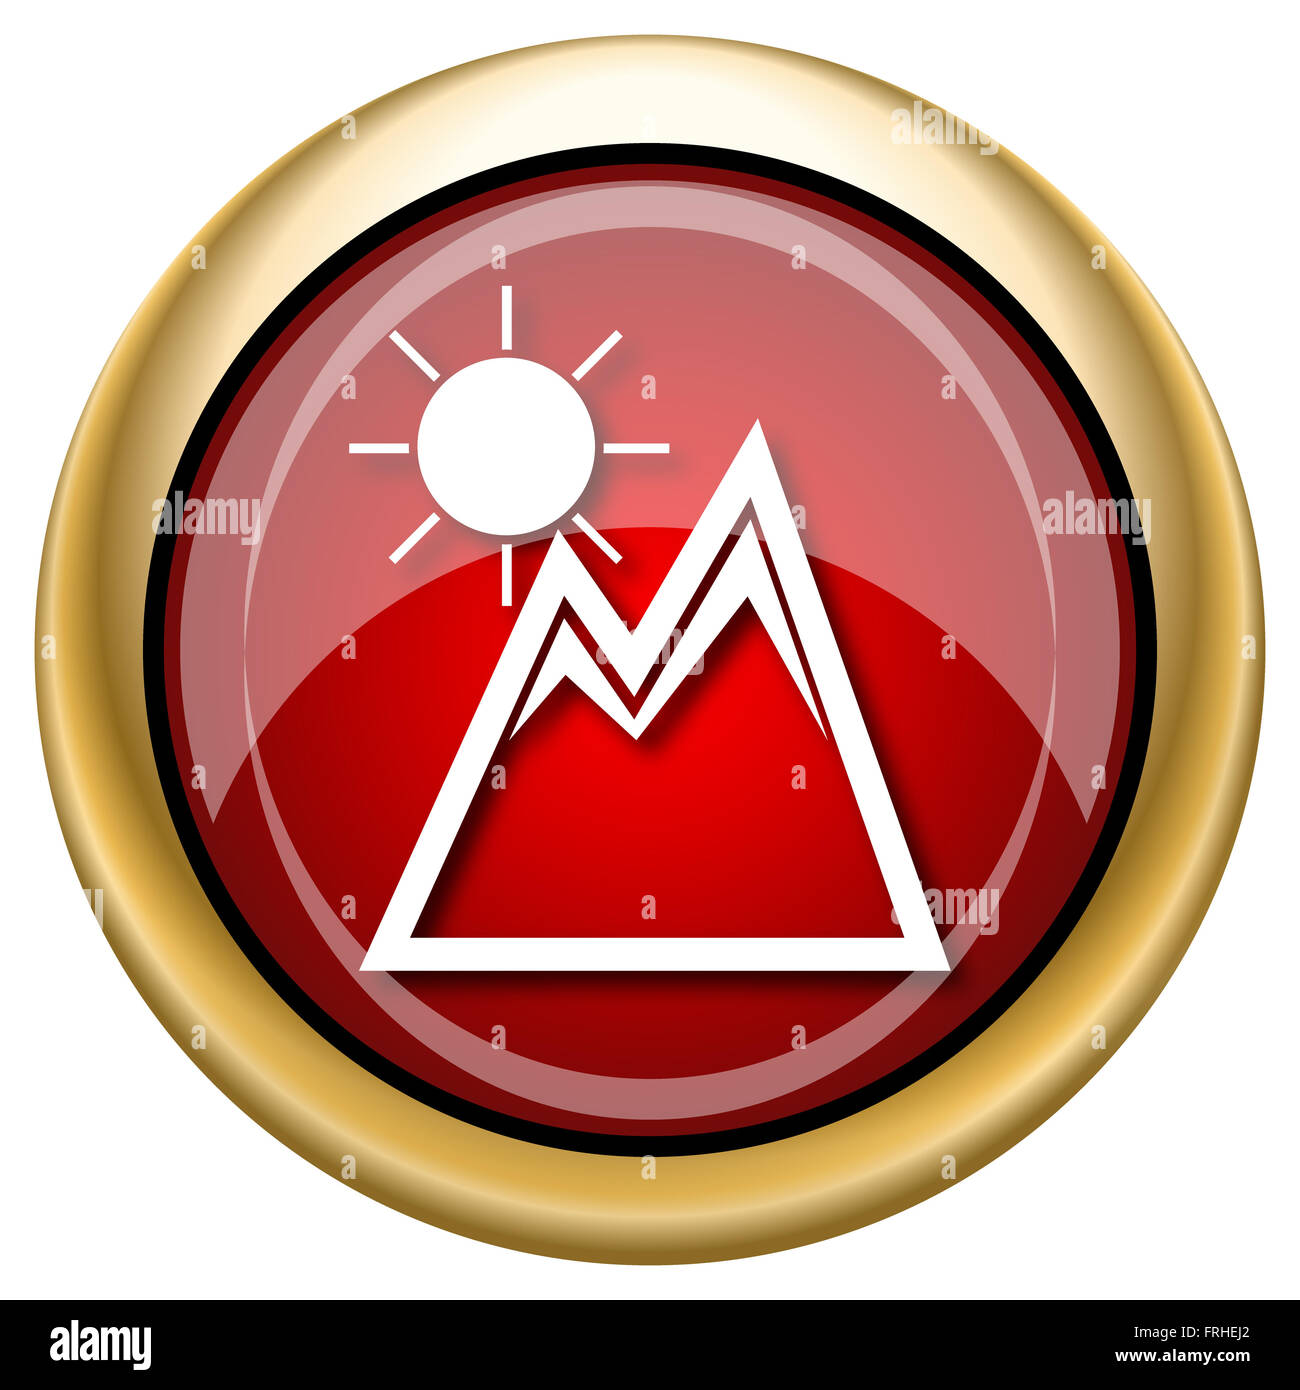 Shiny glossy icon with white design on red and gold background - Stock Image